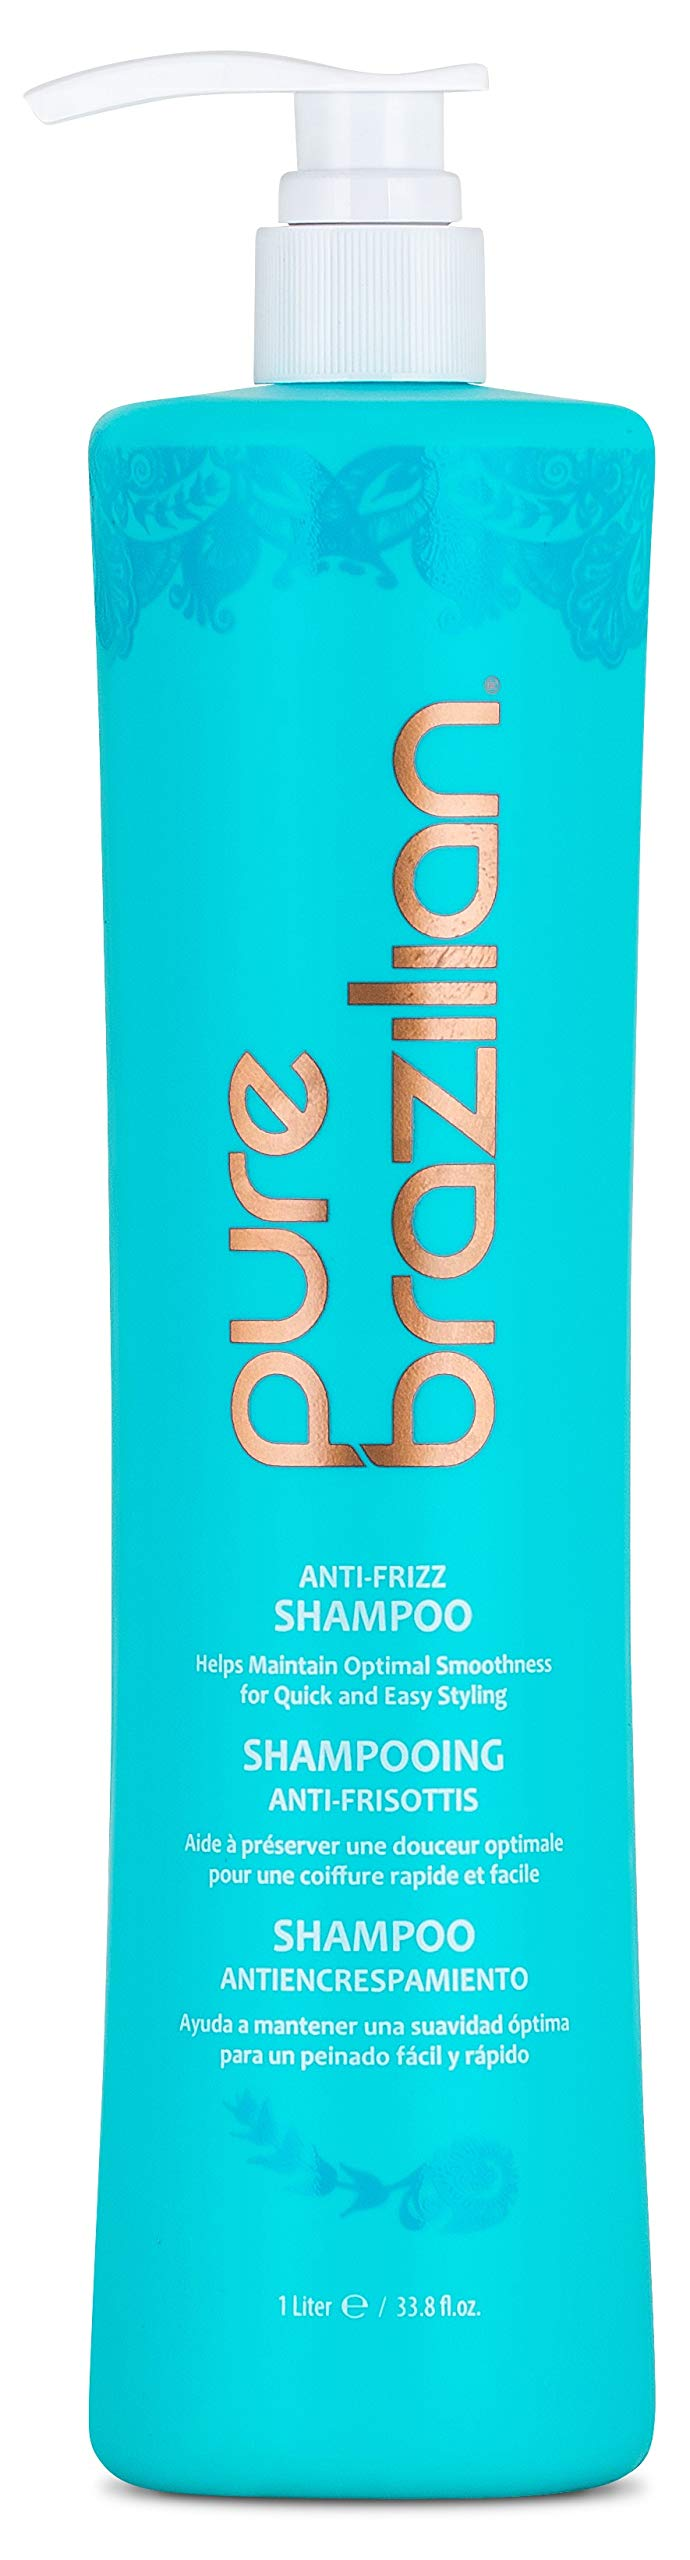 Pure Brazilian - Anti Frizz Daily Shampoo With Pump-Salt-Free, Color Safe, With Keratin, Argan Oil, and Acai (1 Liter/ 33.8 Fl. Ounces) by Pure Brazilian